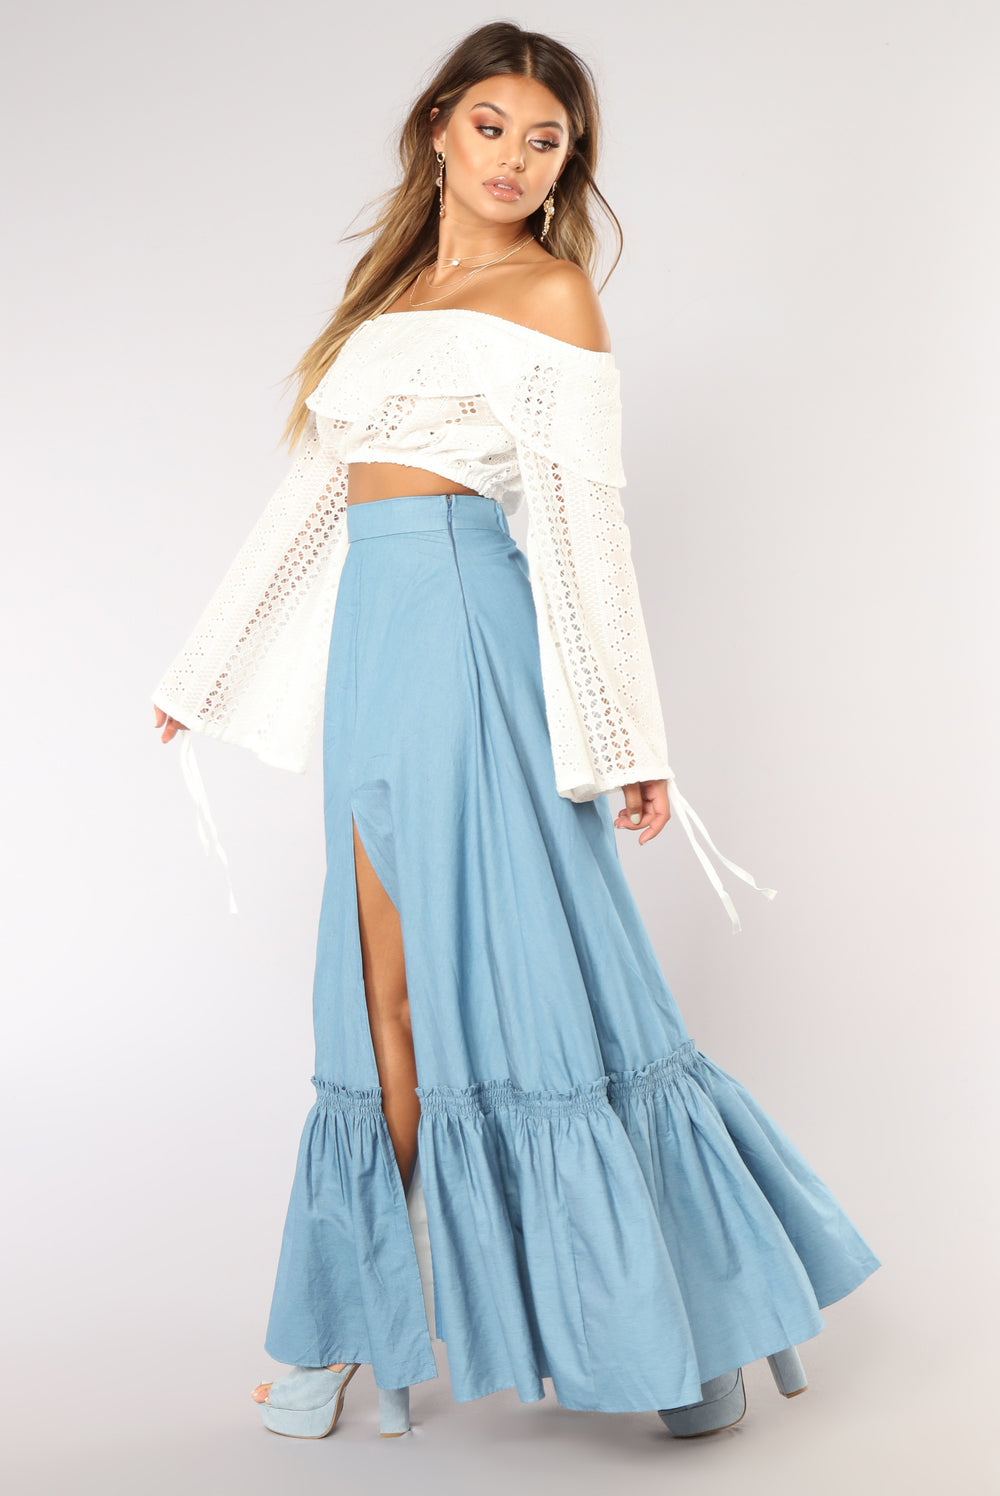 Chill Vibes Ruffle Skirt - Light Denim